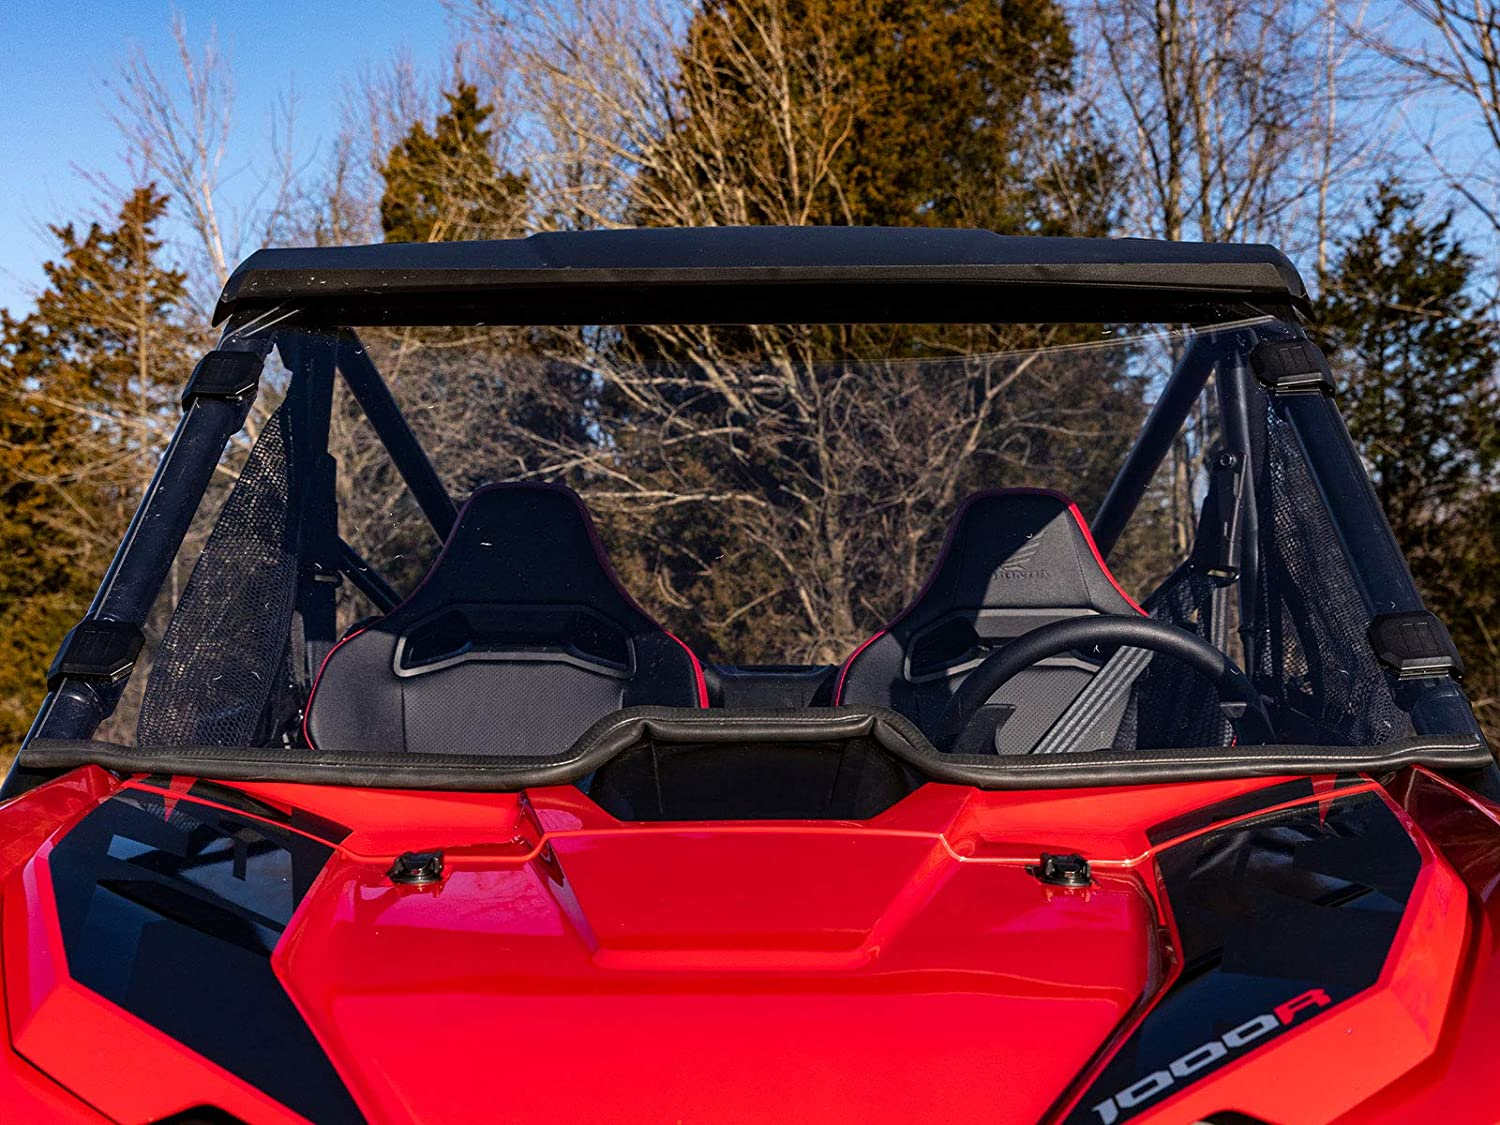 Installs In 5 Minutes! SuperATV Heavy Duty Scratch Resistant Full Windshield for Honda Talon 1000X // 1000R 2019+ Hard Coated for Extreme Durability - Clear